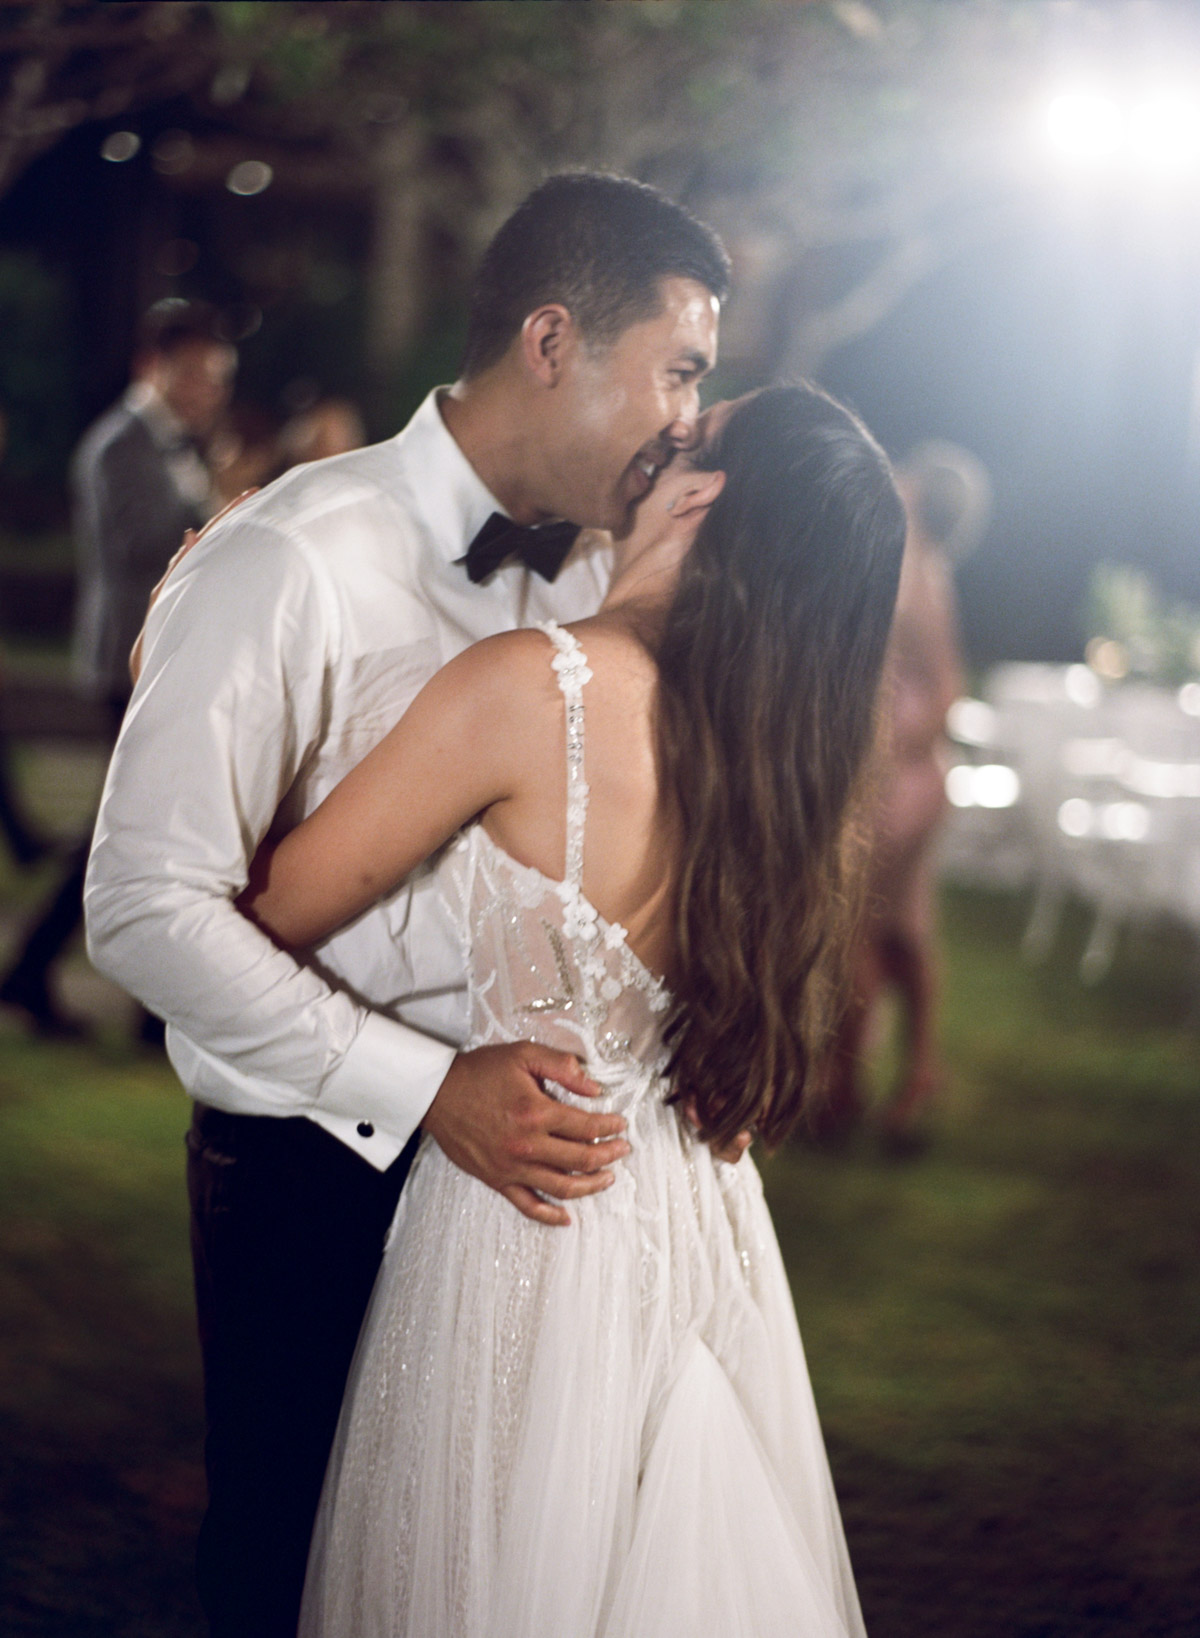 BaliDestinationWeddingKatieGrantPhoto(59of60).jpg